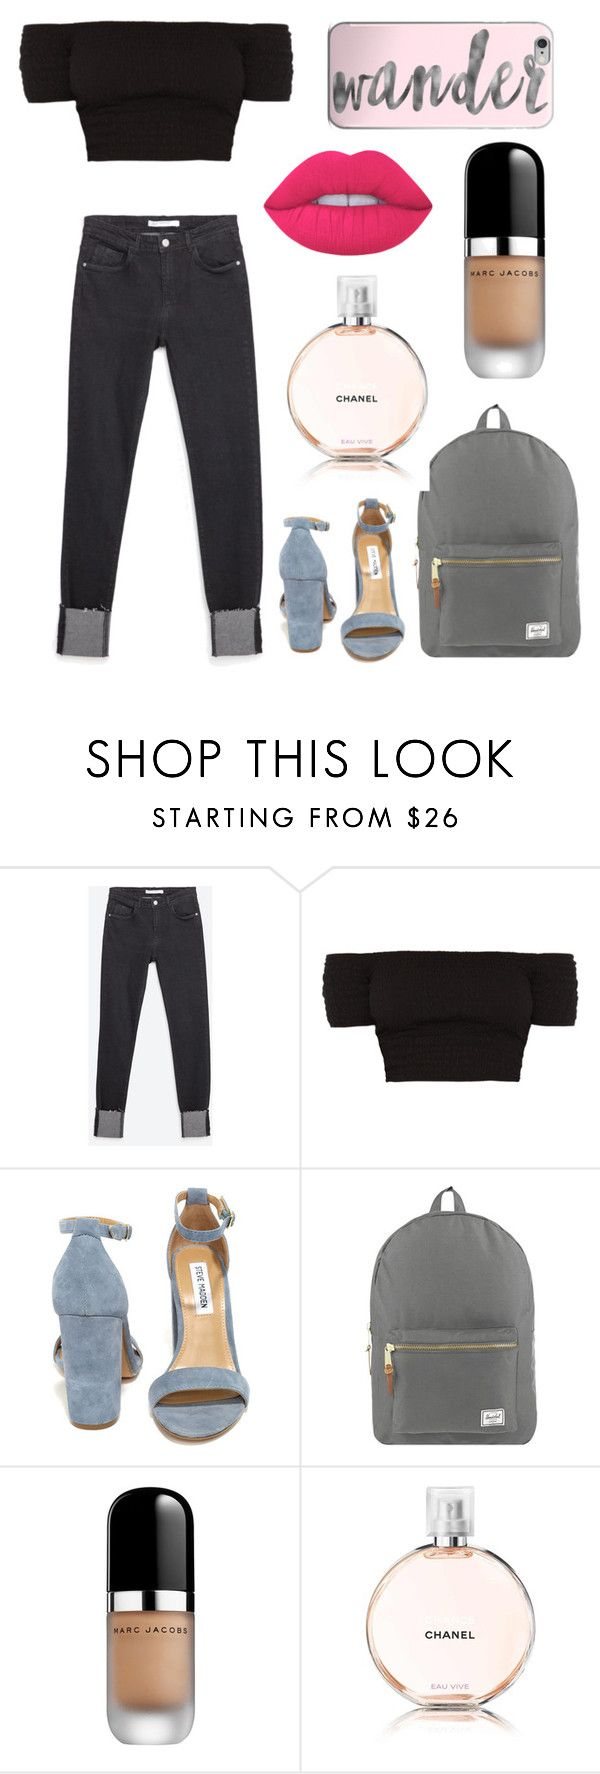 """Untitled #92"" by rainthunderari ❤ liked on Polyvore featuring Zara, Steve Madden, Herschel Supply Co., Marc Jacobs, Chanel and Lime Crime"